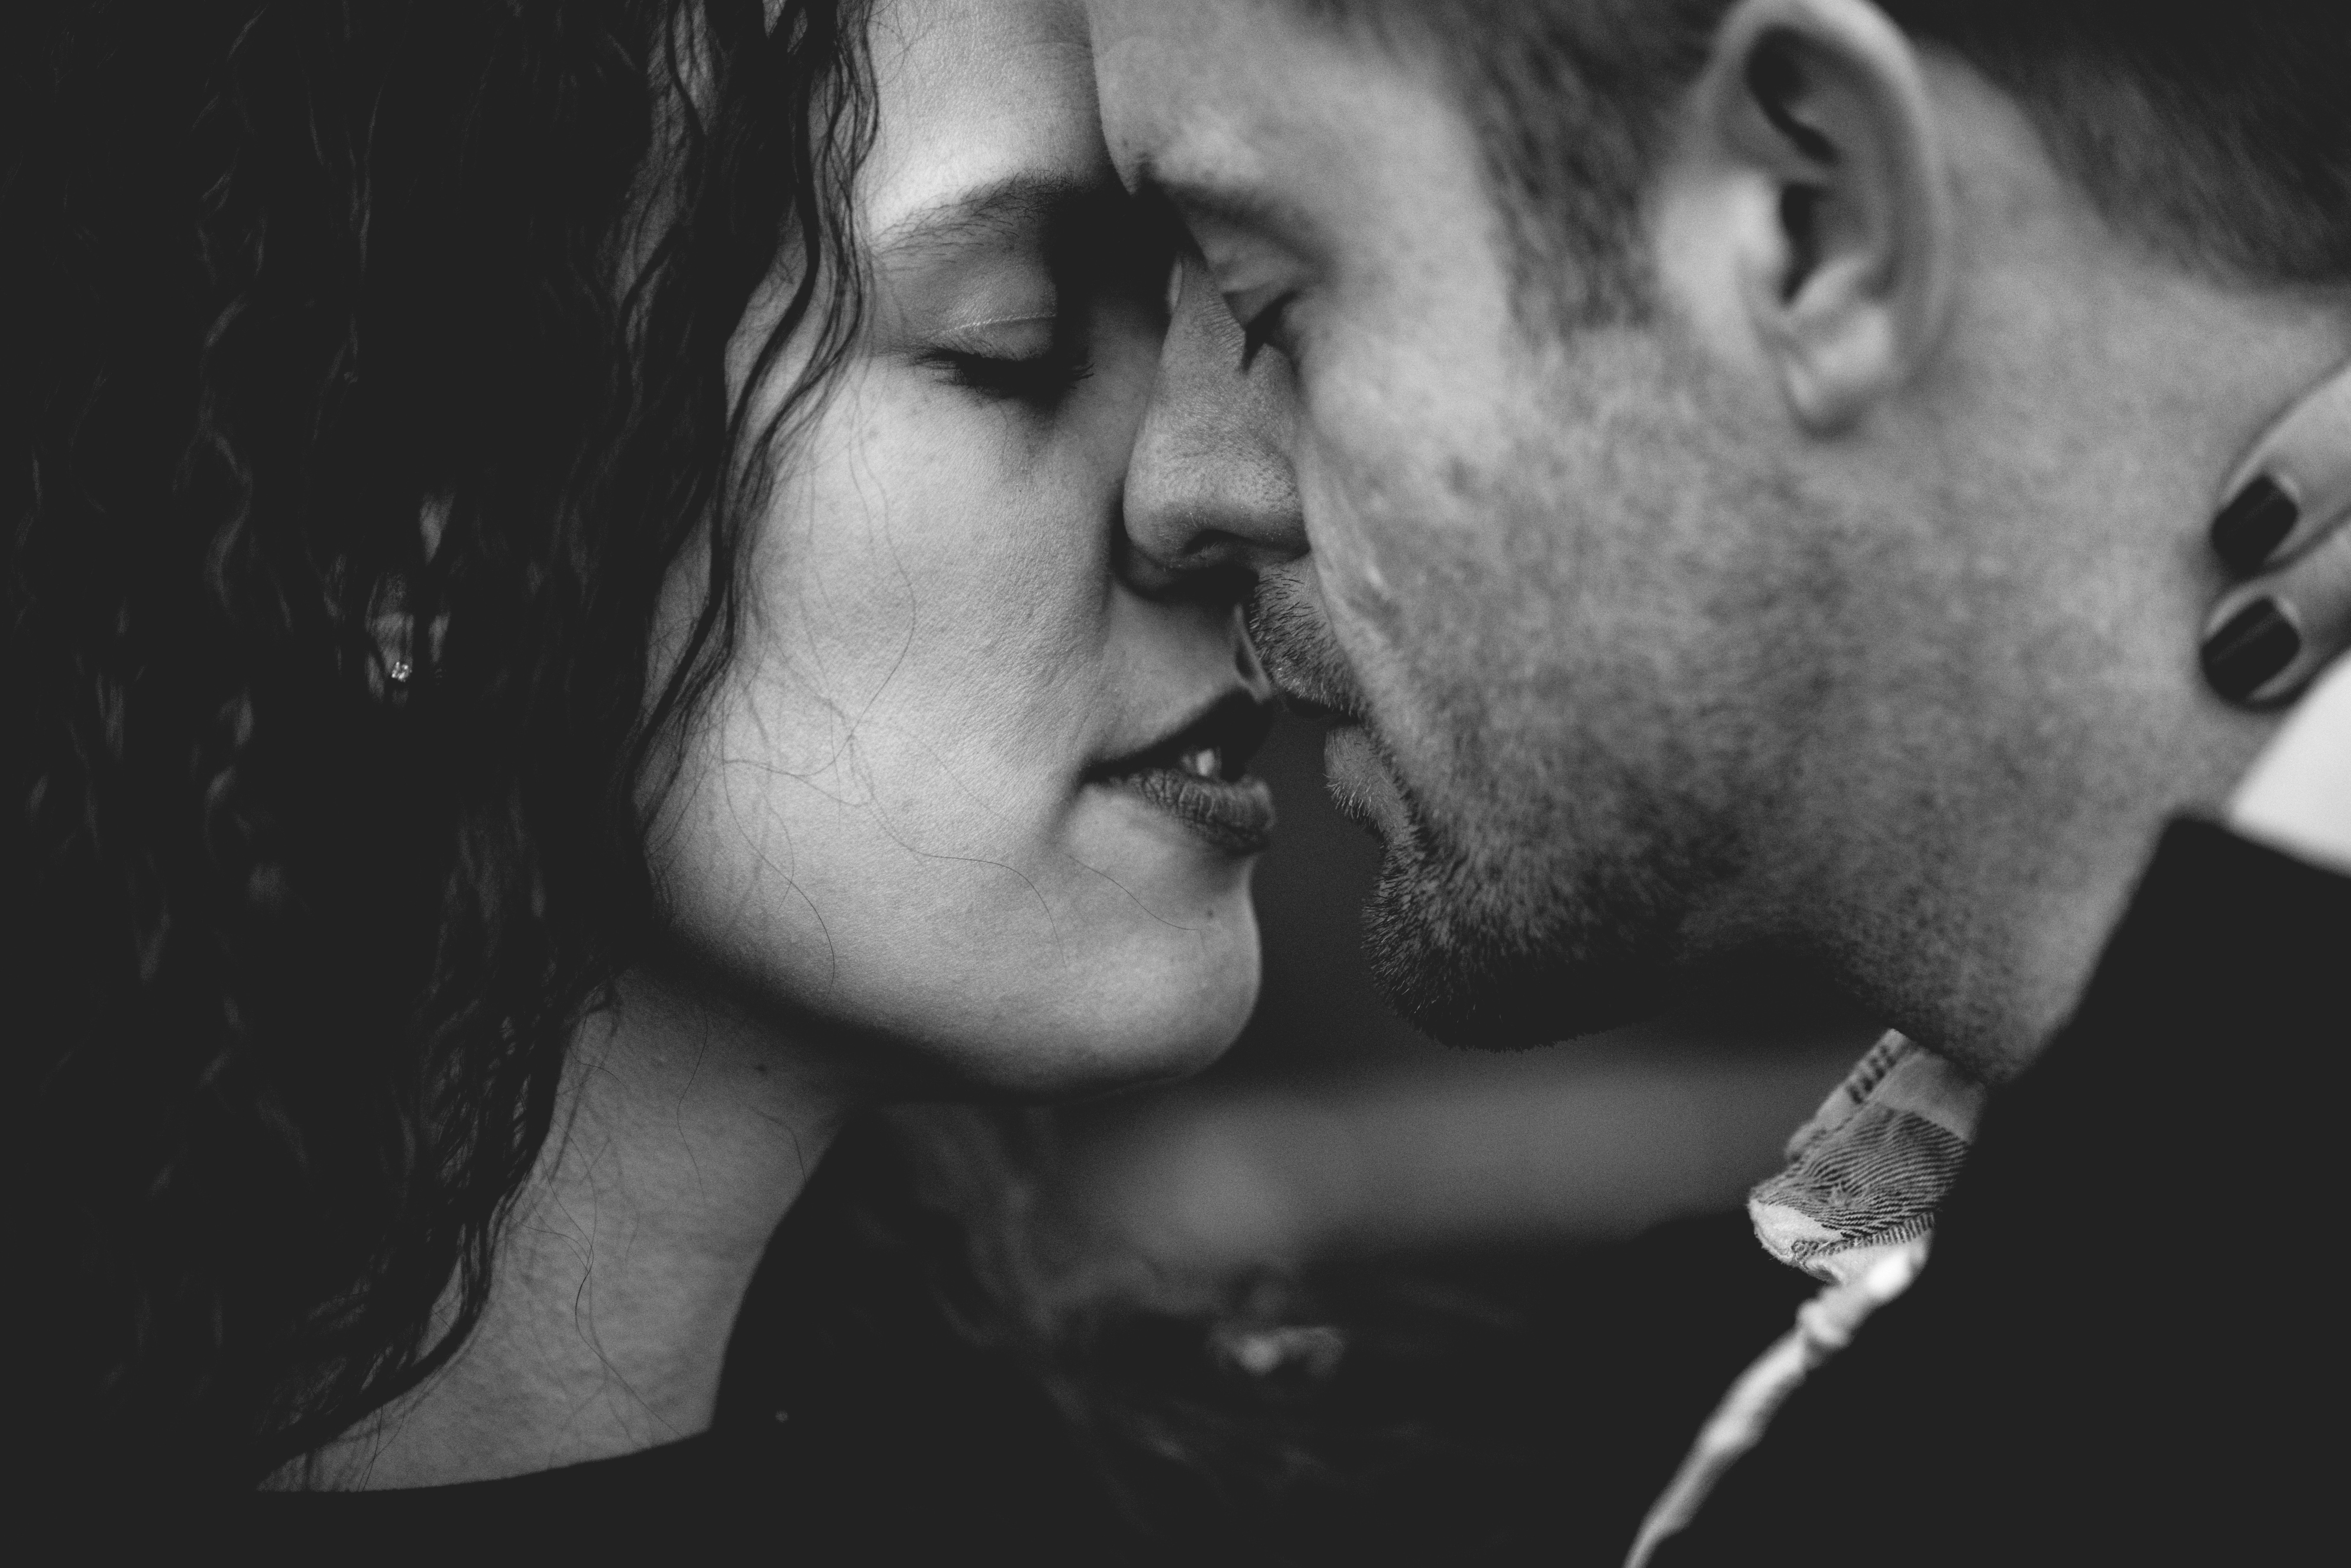 grayscale photo of man and woman kissing each other